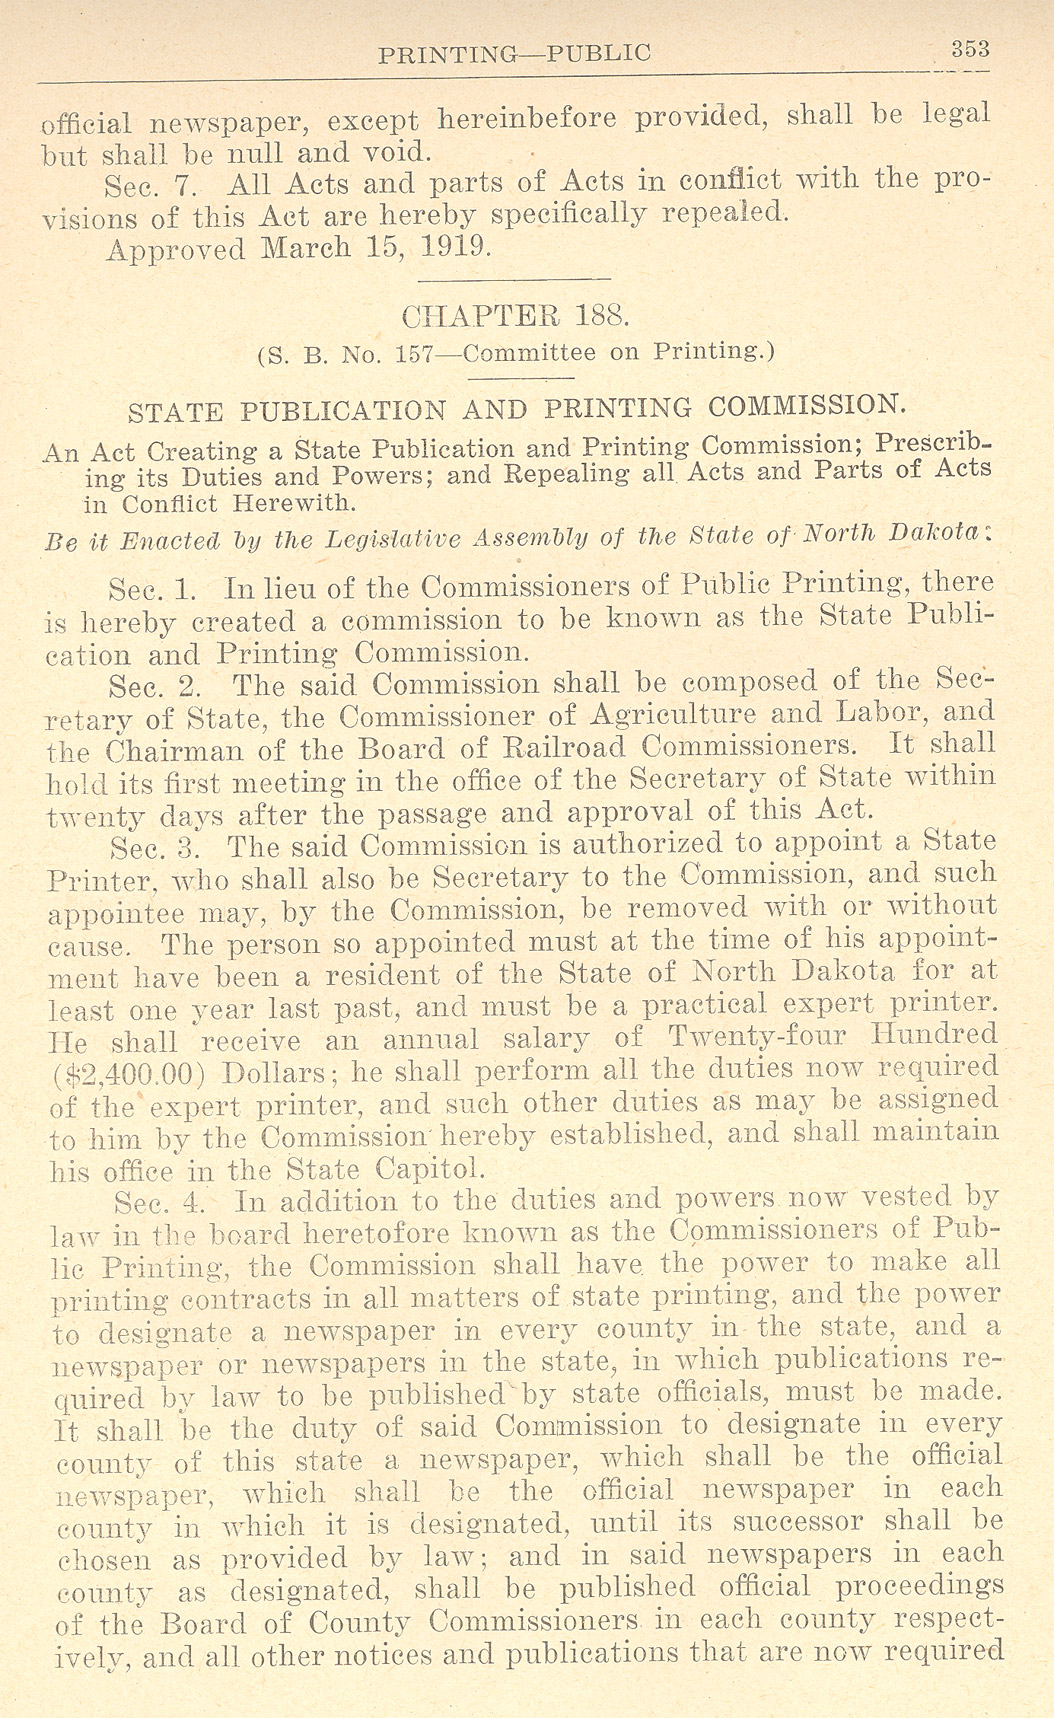 The 1919 legislature passed two laws regarding the state printing business. One allowed for voters to select the official county newspaper. This law would not be effective until the next election in 1920. The other law created the State Printing Commission which would select official county newspapers. More than 61 newspapers had gone out of business before voters had a chance to vote for a county newspaper. These images were scanned from the North Dakota Laws of 1919.